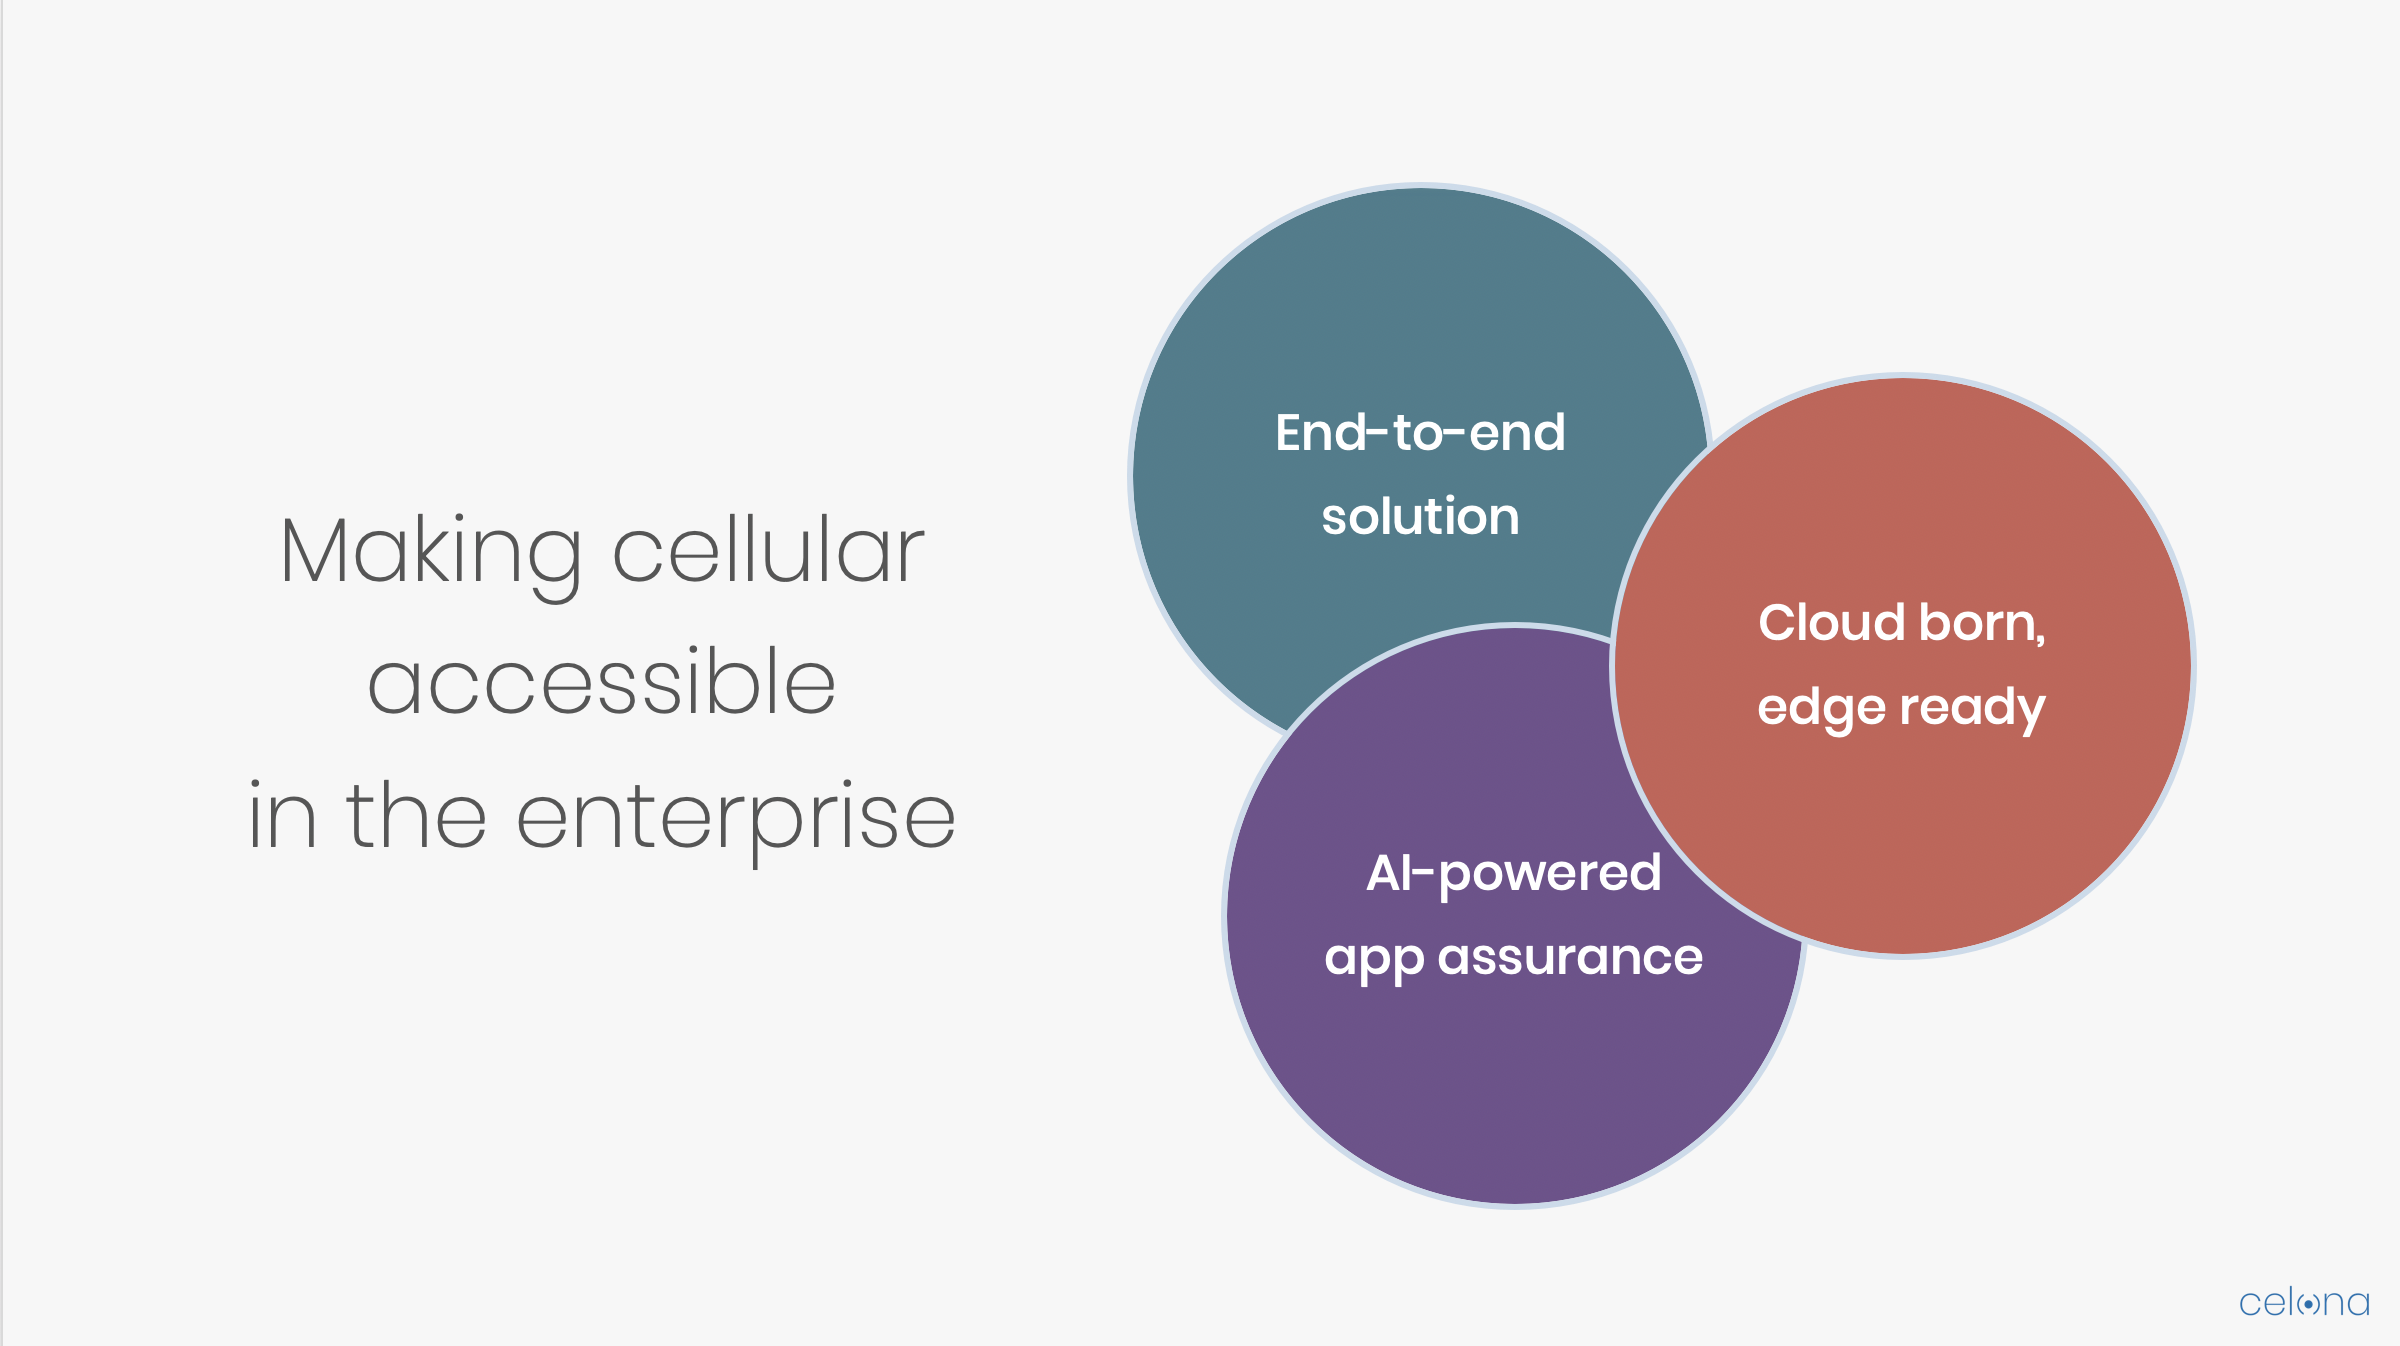 Making cellular accesible in the enterprise